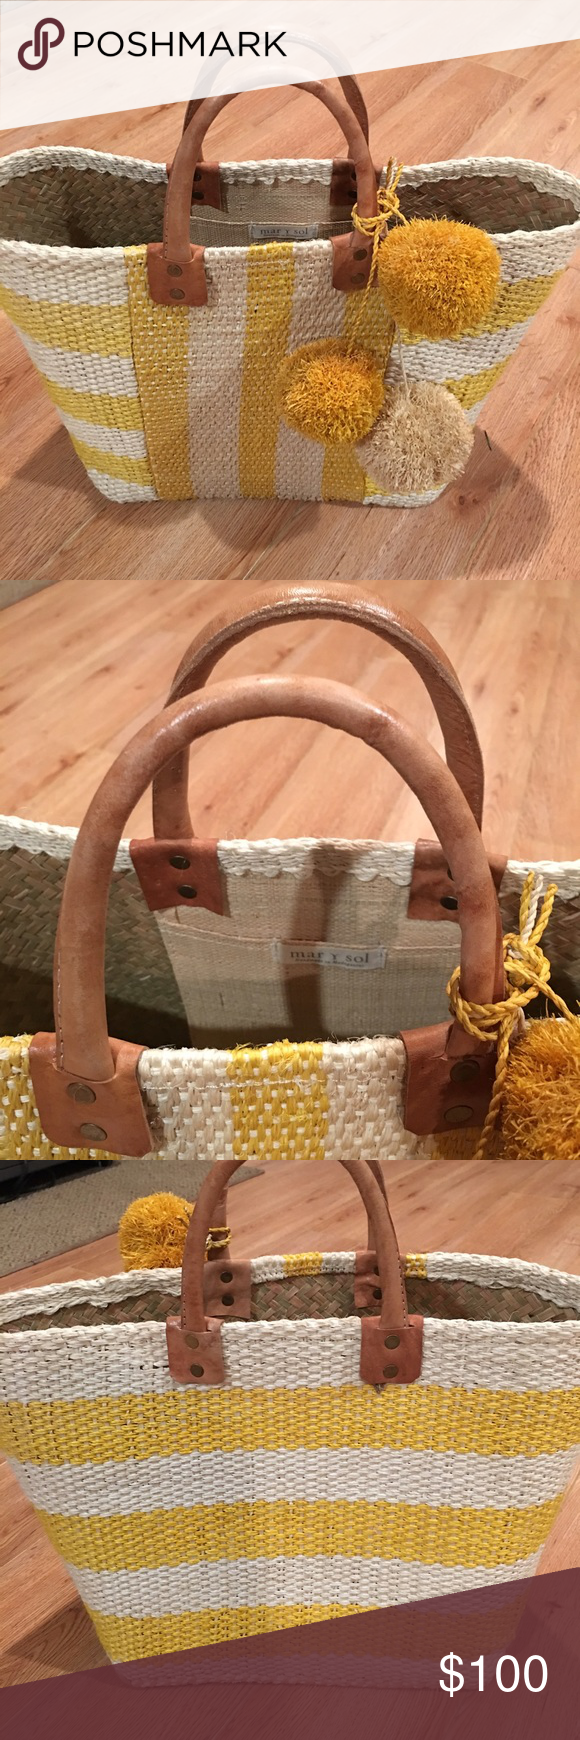 """Yellow Mar Y Sol Tote NWOT Mar y Sol tote. Never used, currently retails for $125 on Bloomingdales. Double handles, unlined, open top. 15""""L x 6""""W x 11""""H, 5"""" handle drop. Bags Totes"""